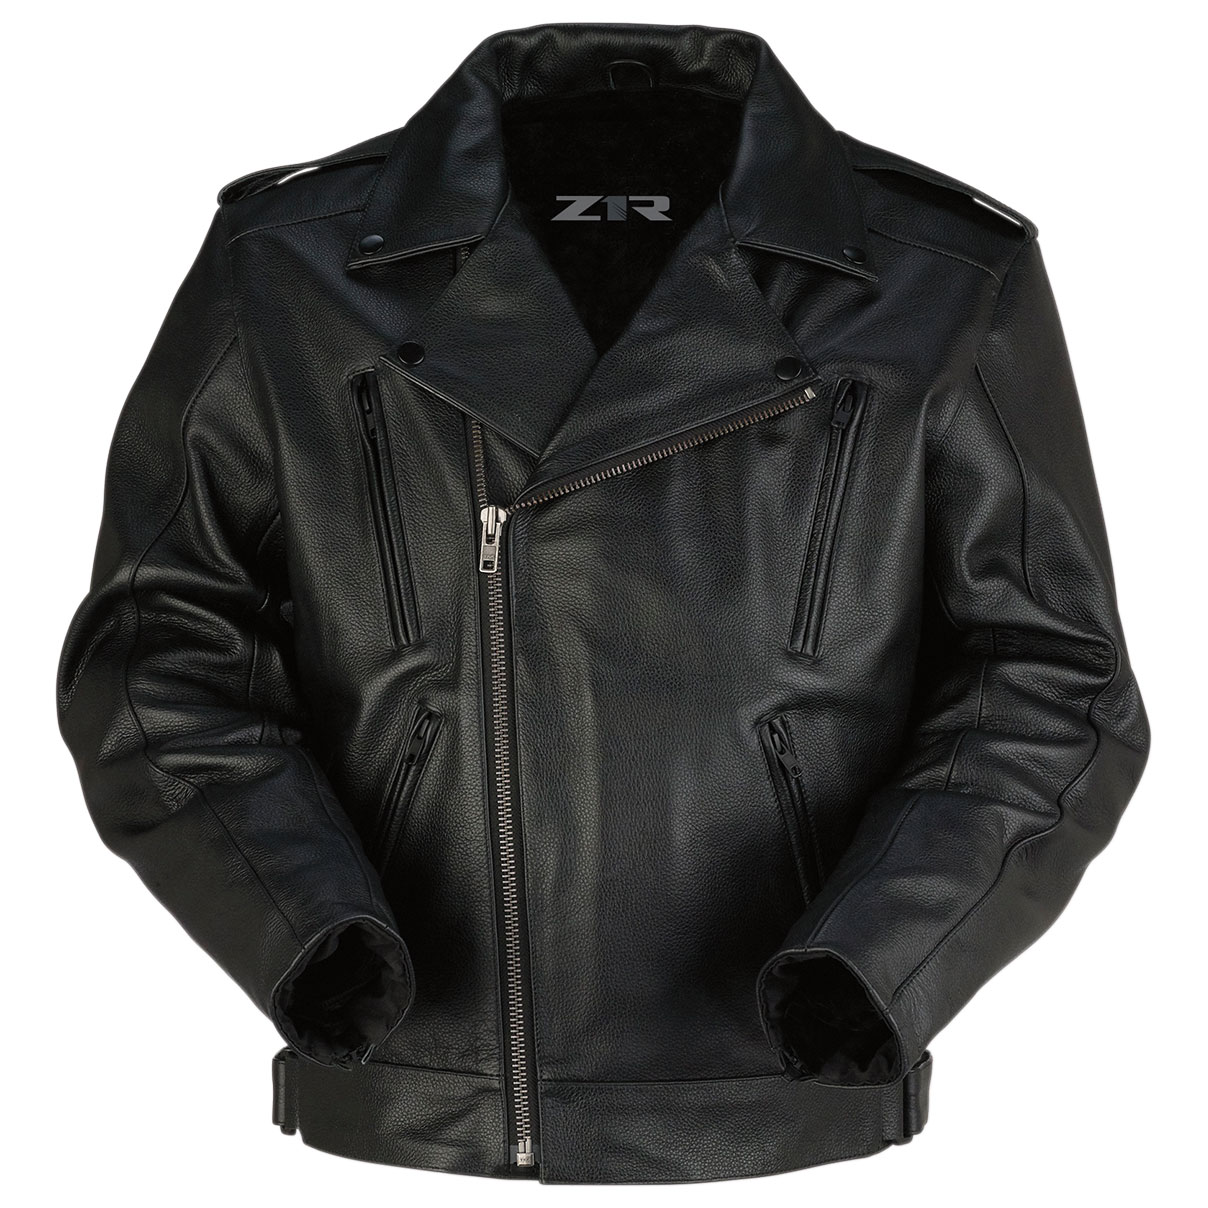 Z1R Men's Forge Black Leather Jacket